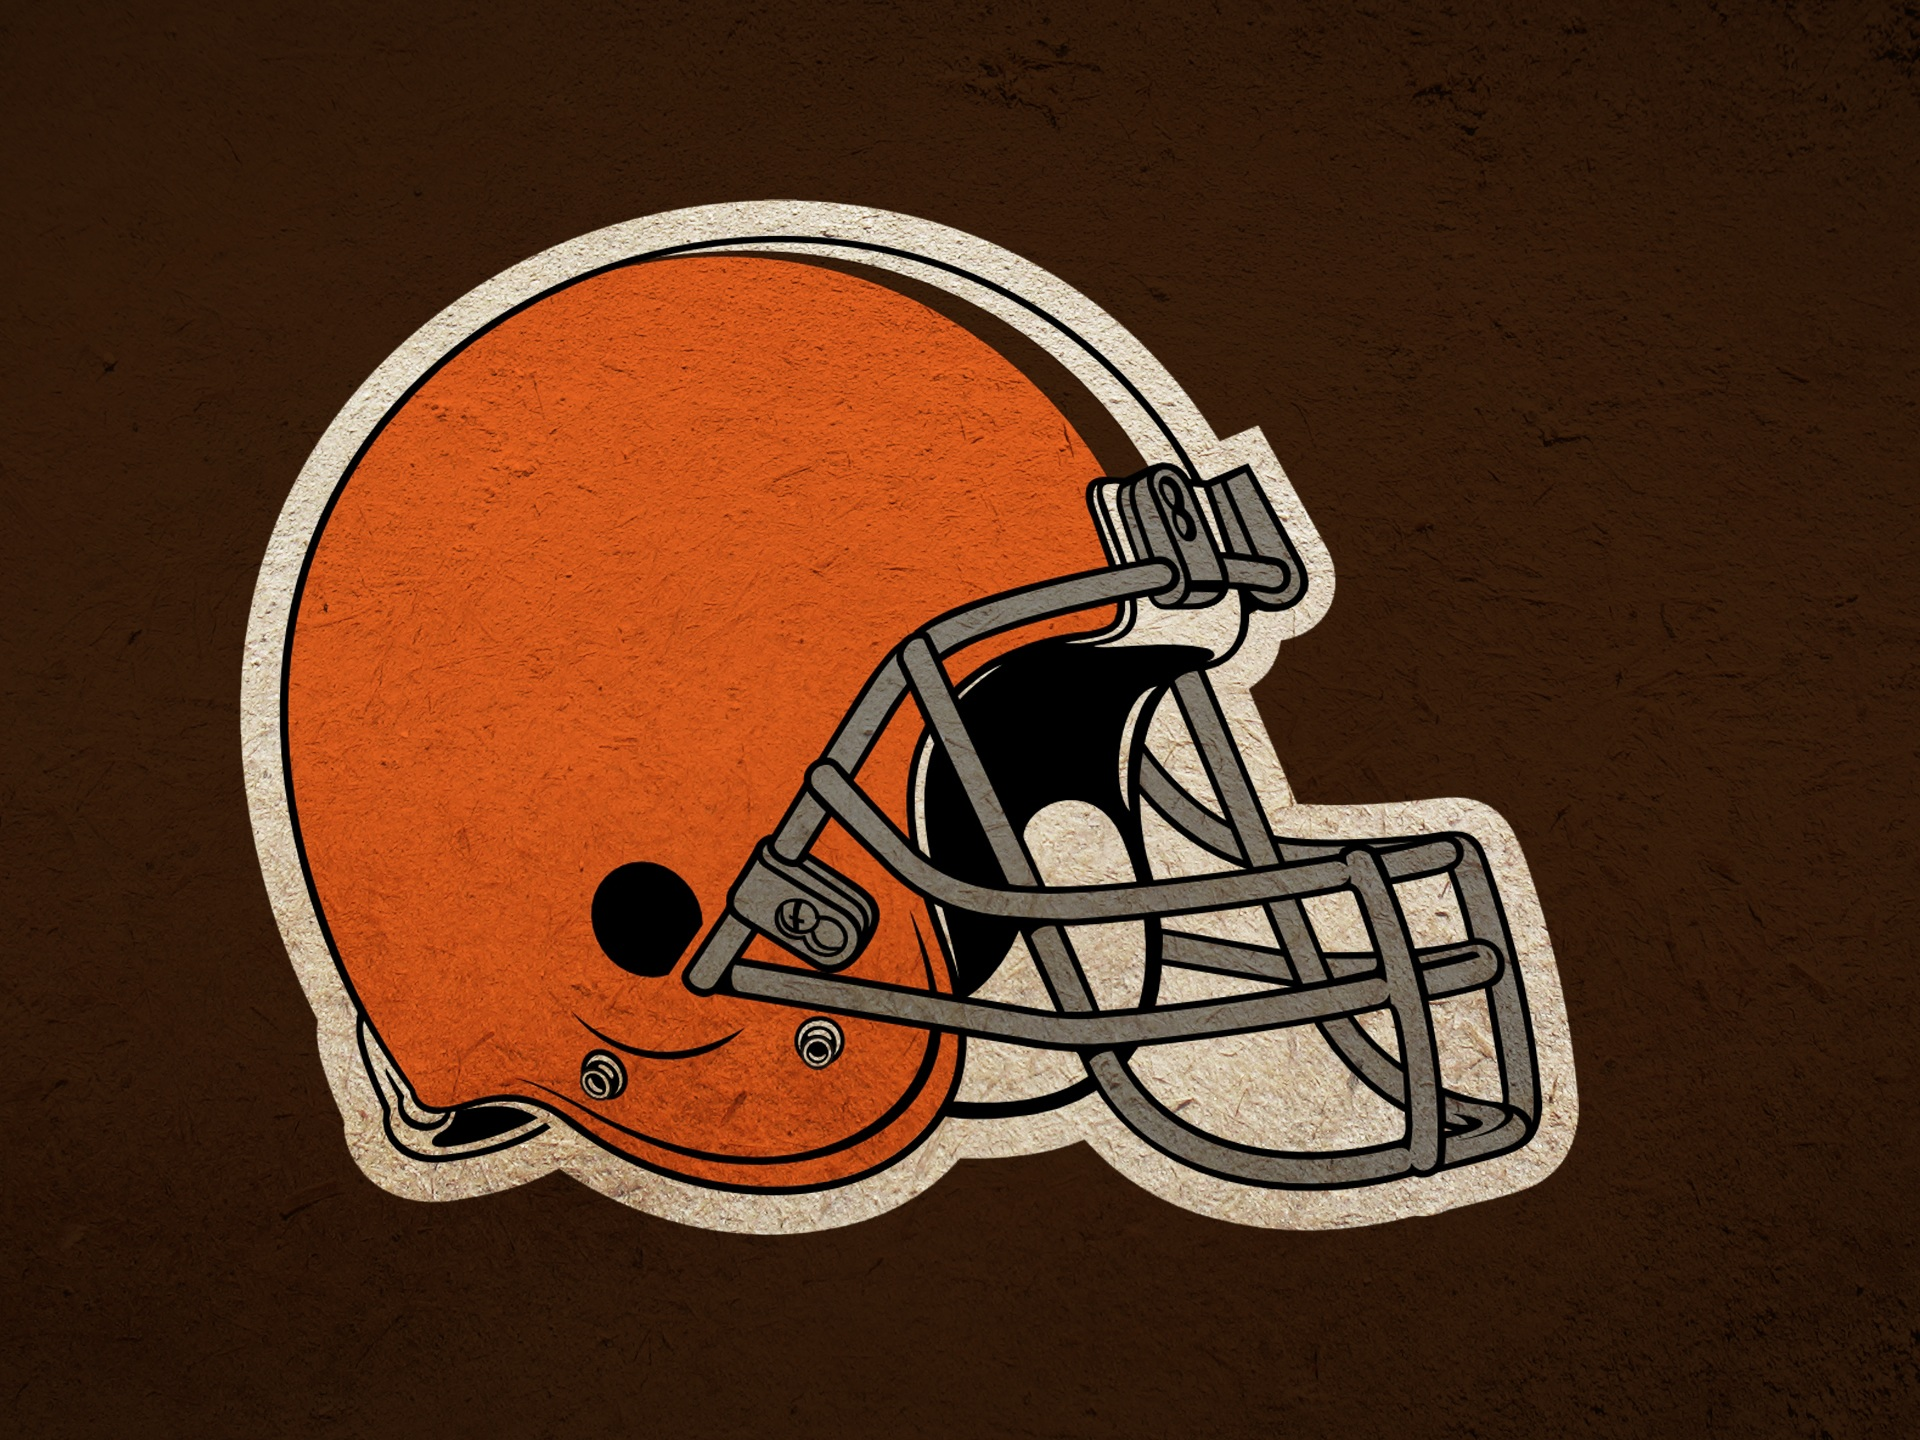 CLEVELAND BROWNS nfl football ge wallpaper 1920x1440 157699 1920x1440